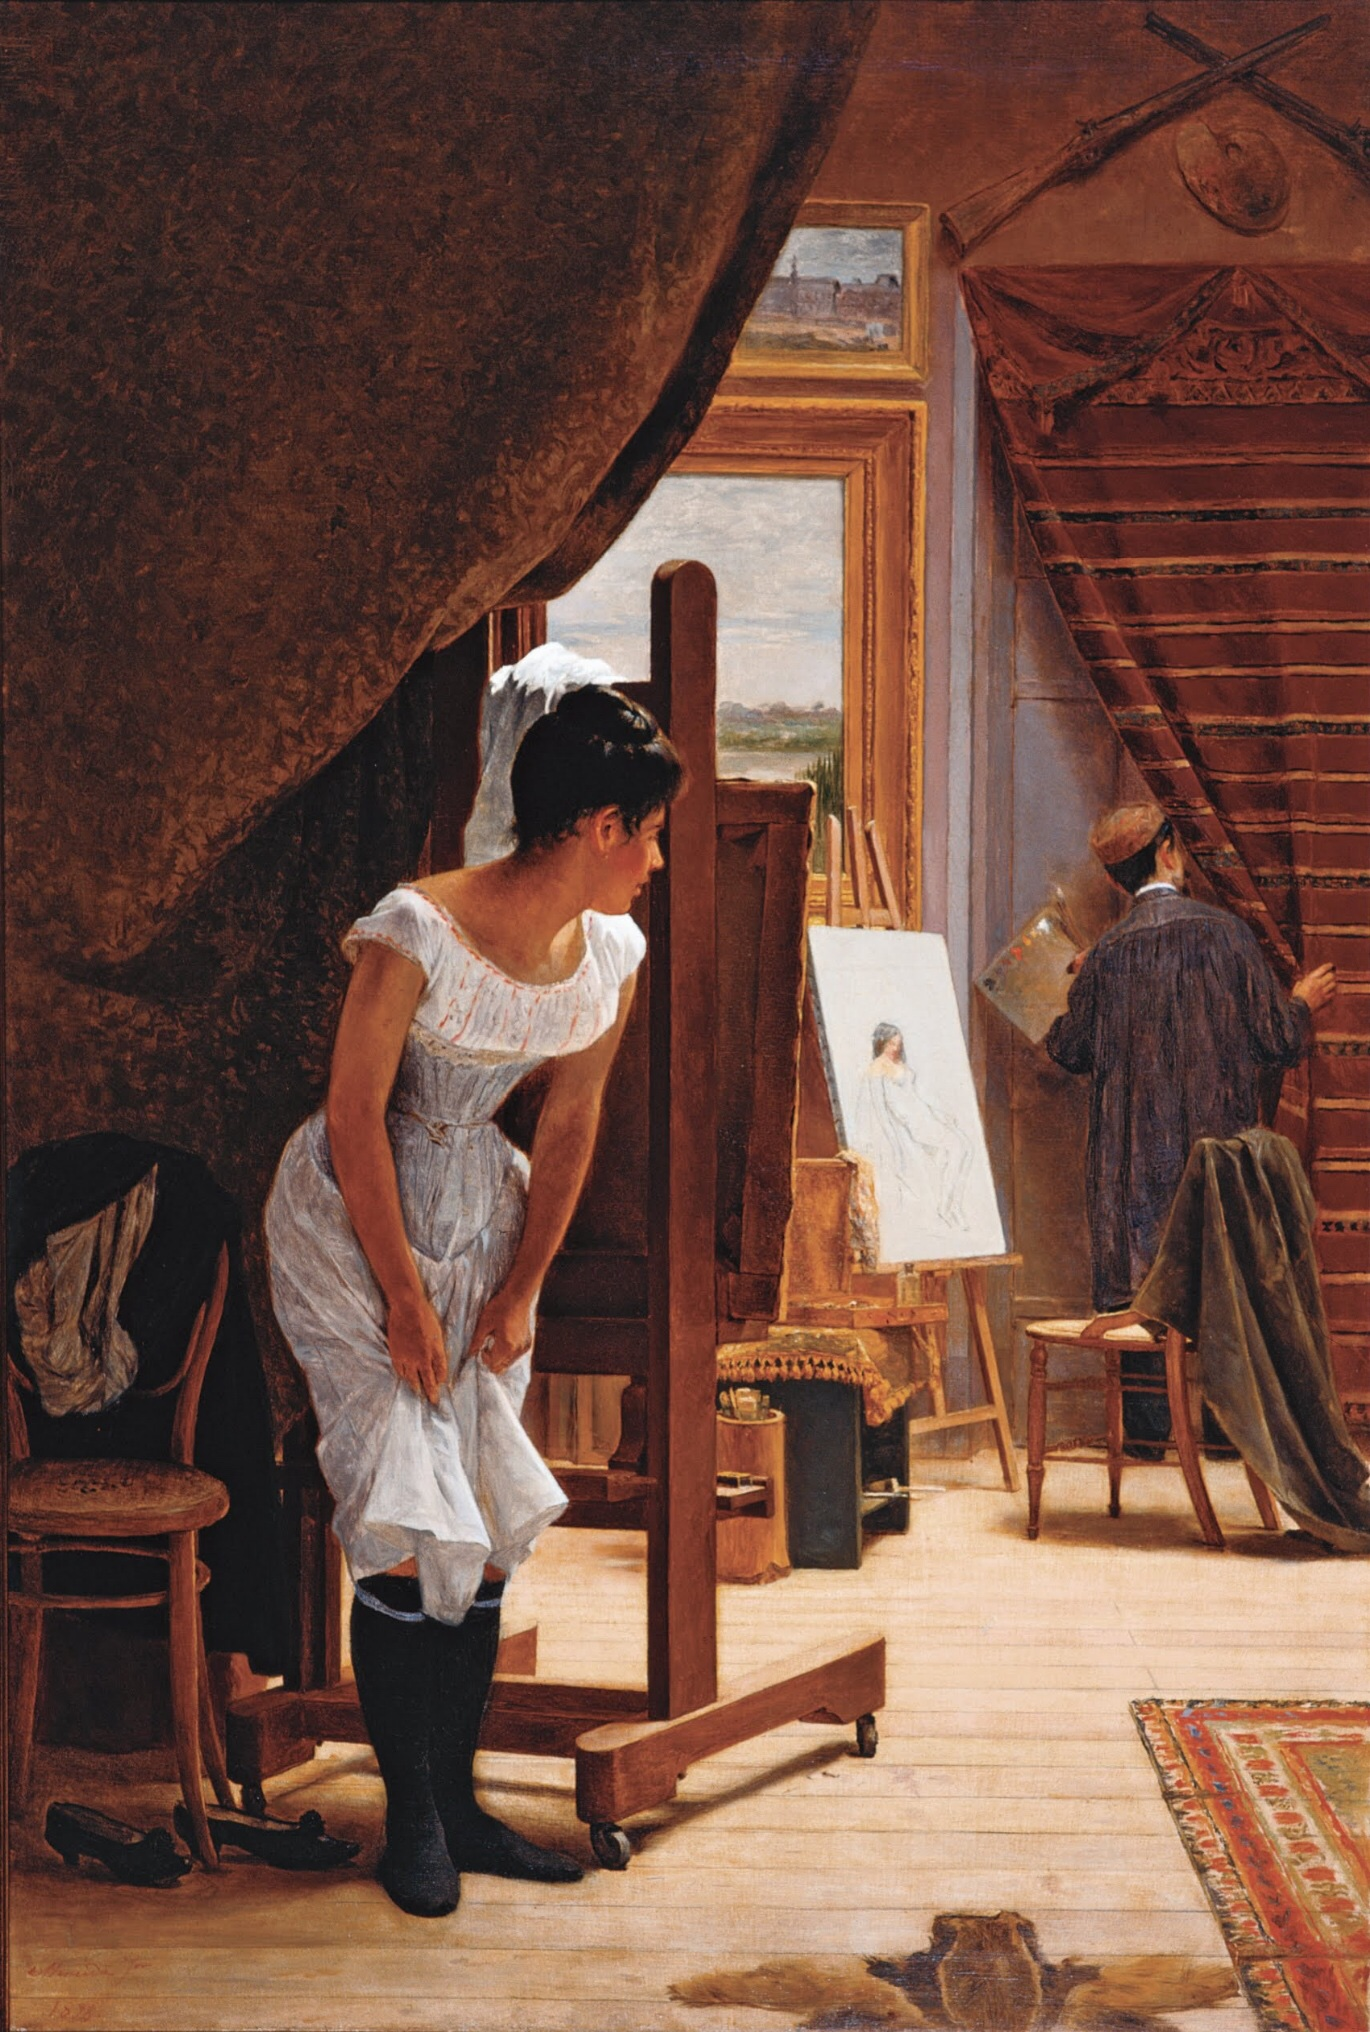 The Inopportune (1898) - José Ferraz de Almeida Júnior